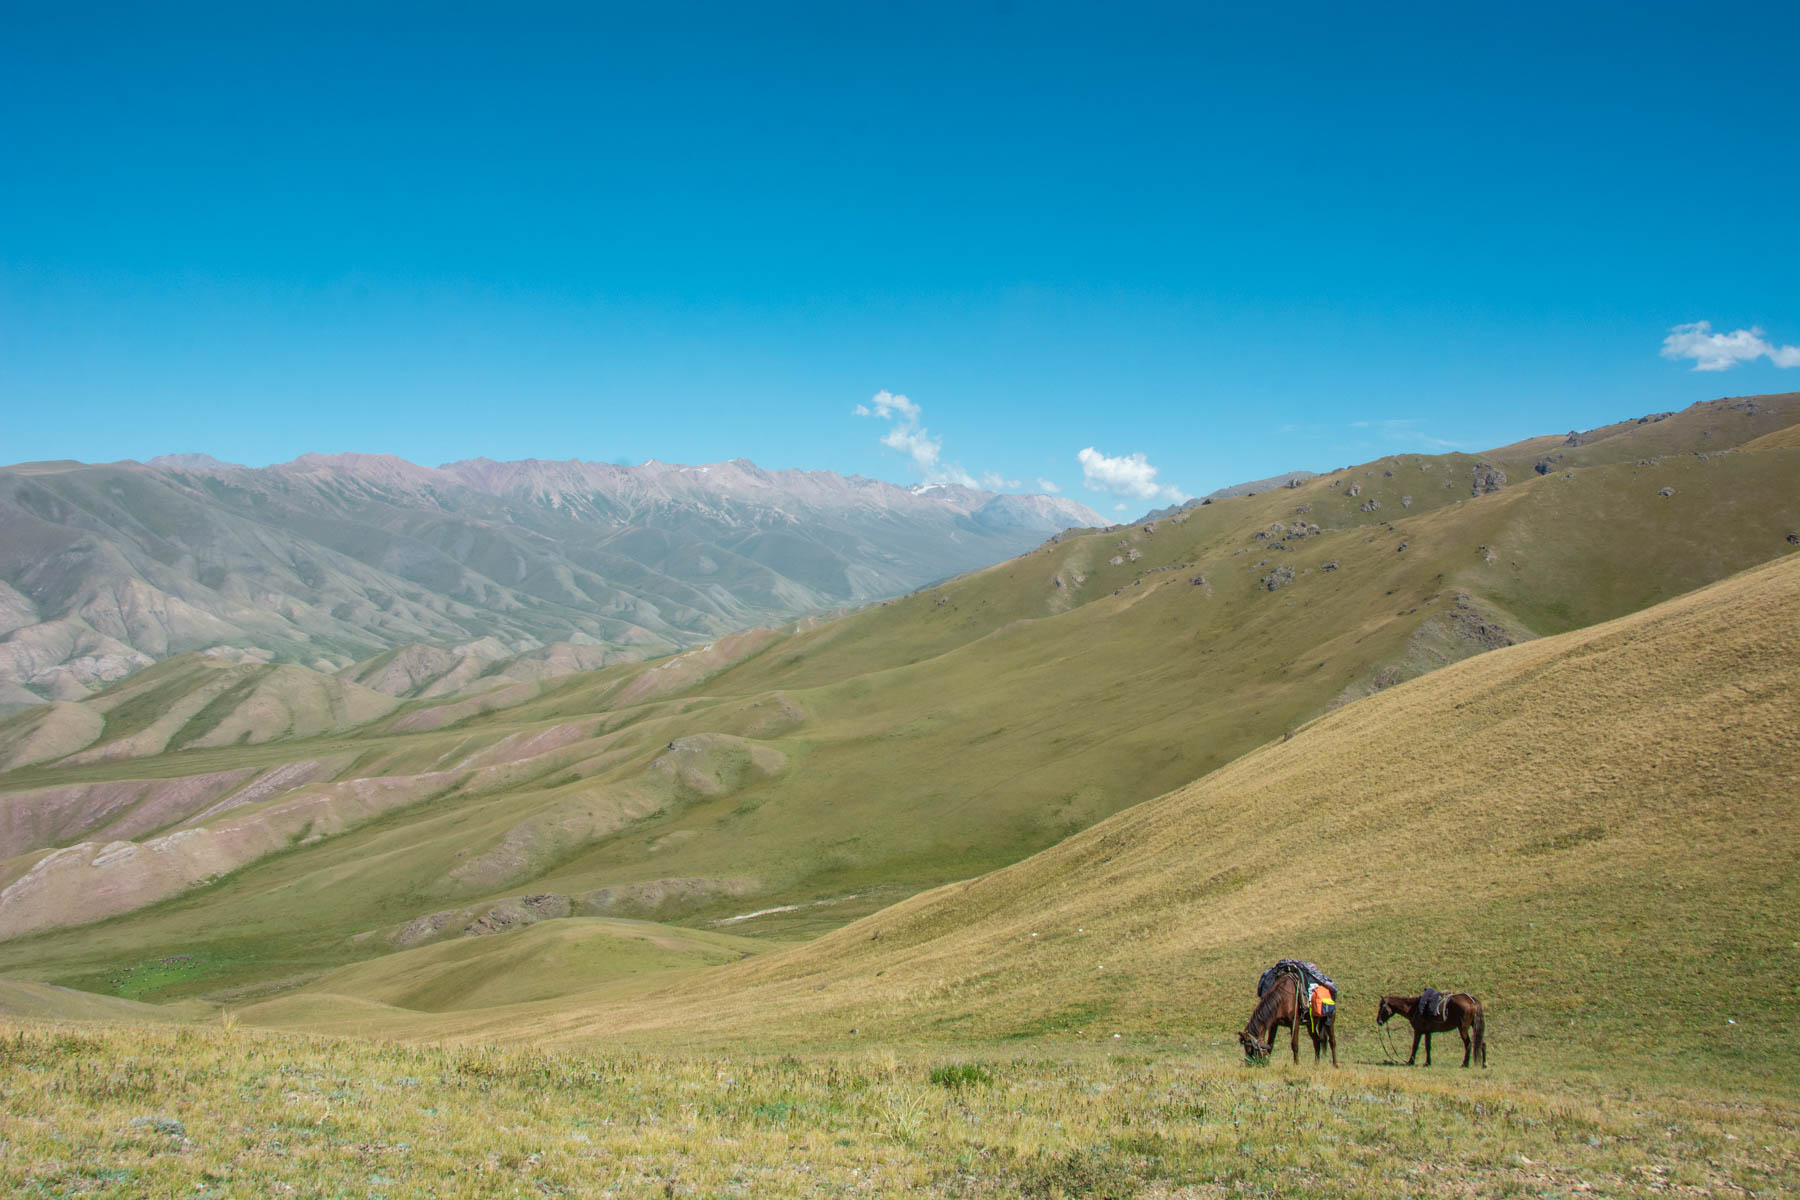 Mountains near Kyzart pass in Kyrgyzstan - Lost With Purpose